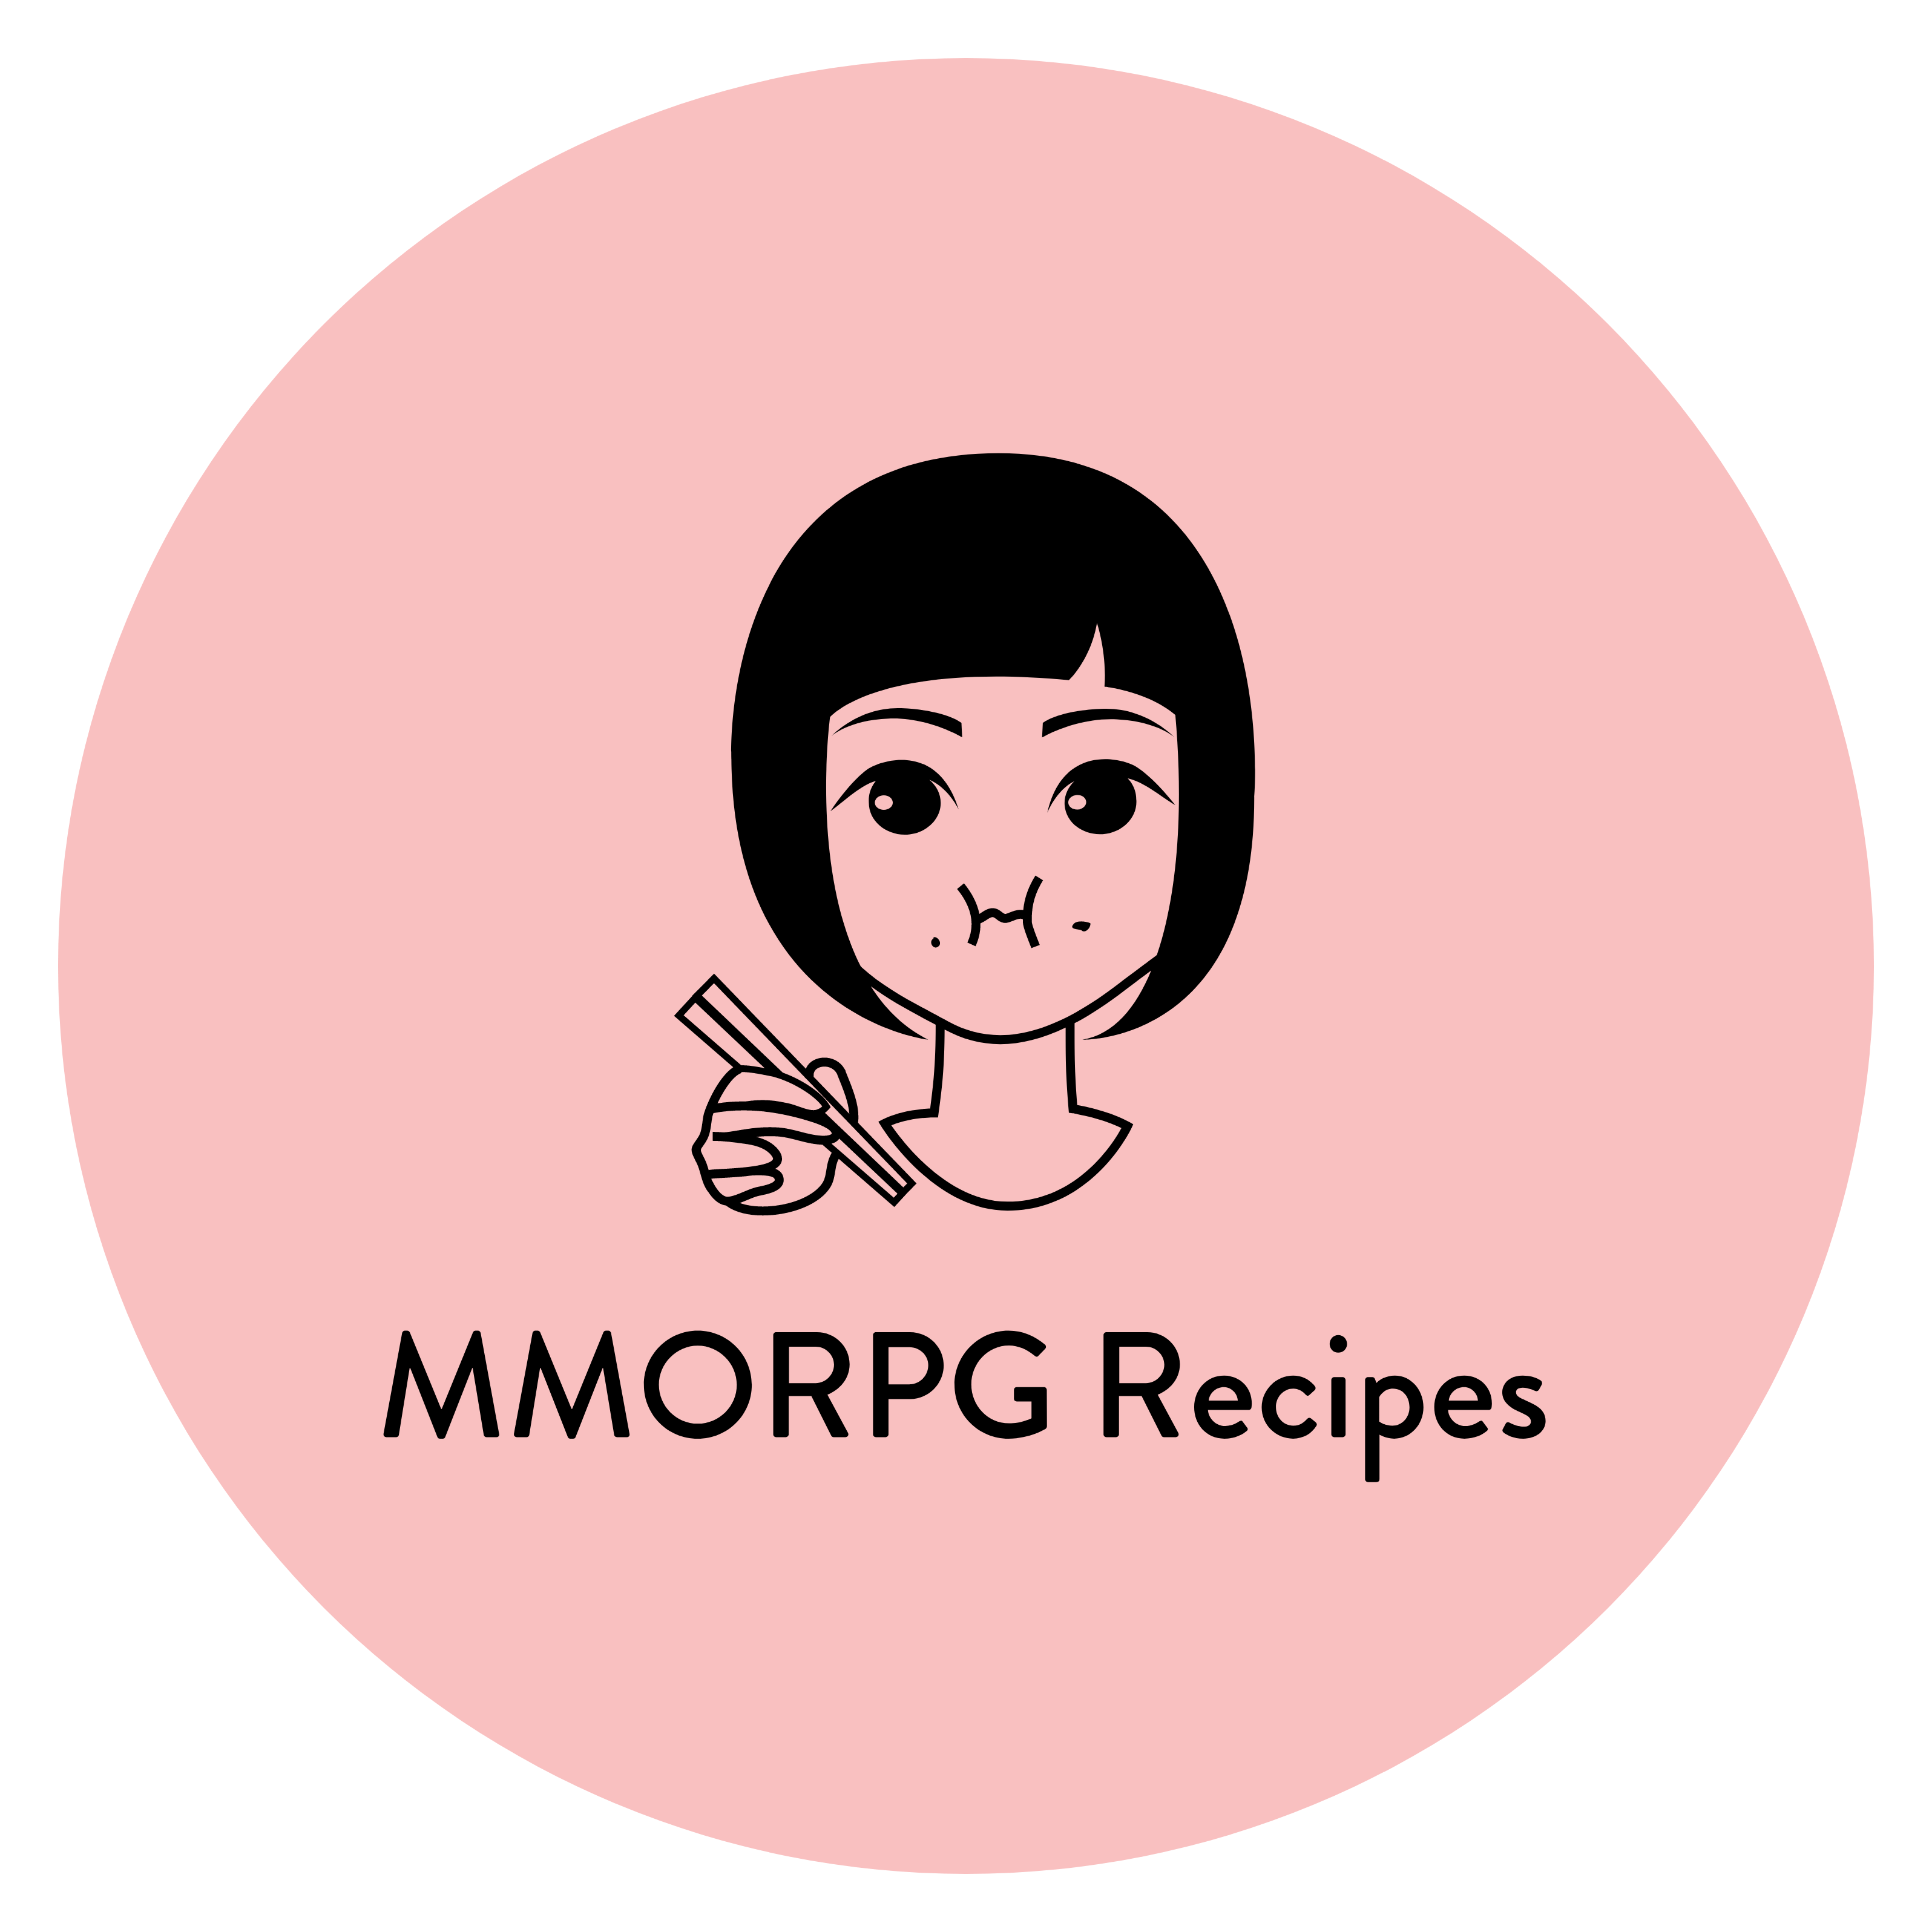 MMORPG Recipes